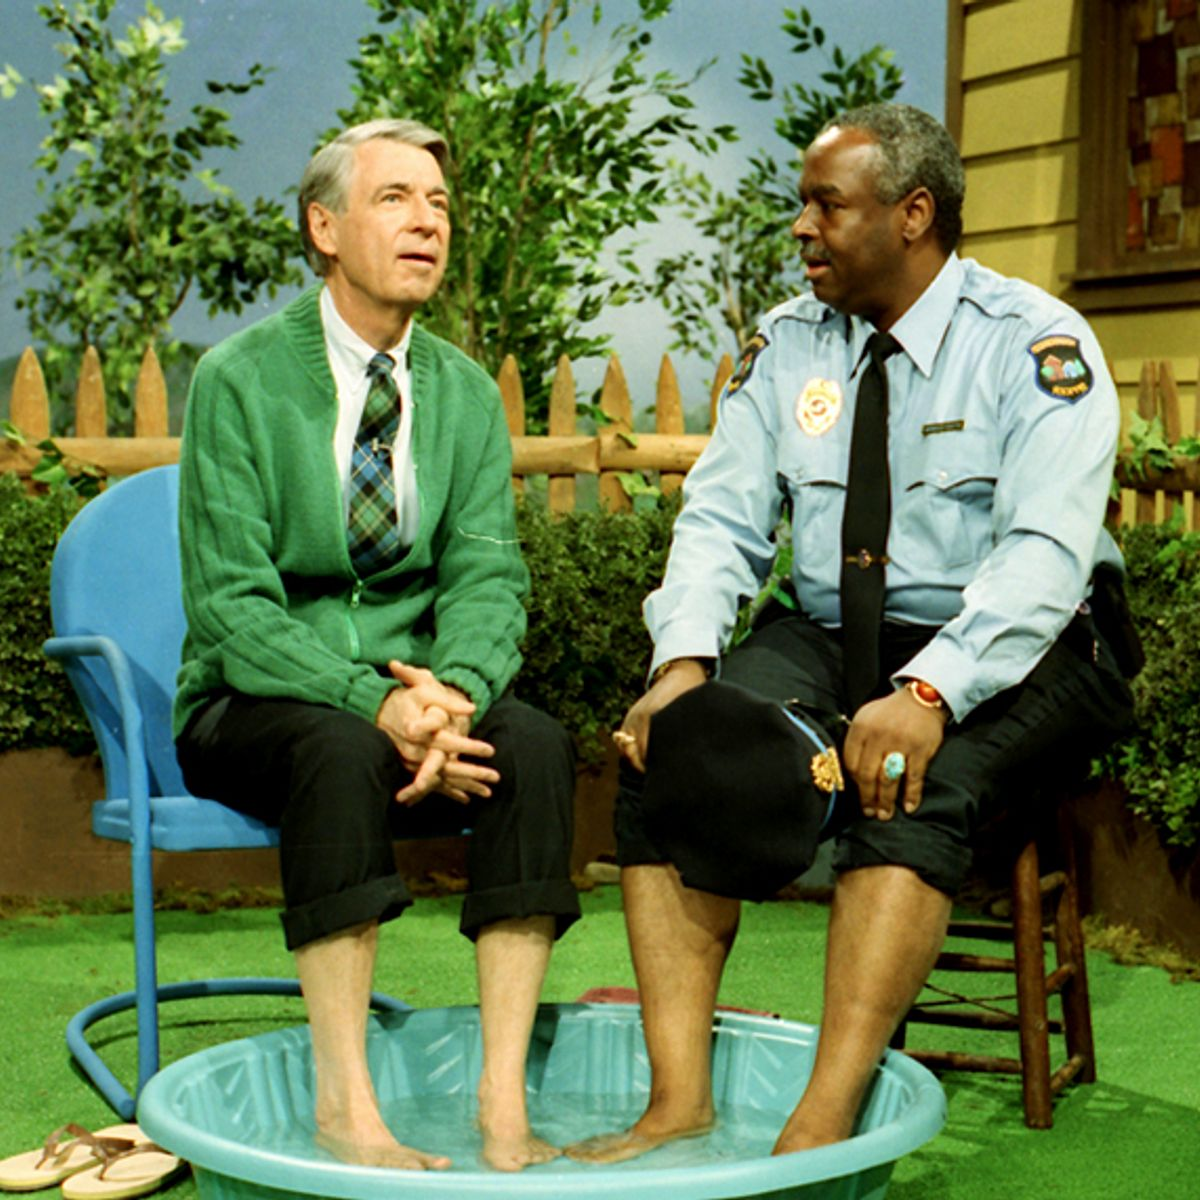 Mister Rogers Was Actually A Badass New Film Won T You Be My Neighbor Shows His Tough Side Salon Com